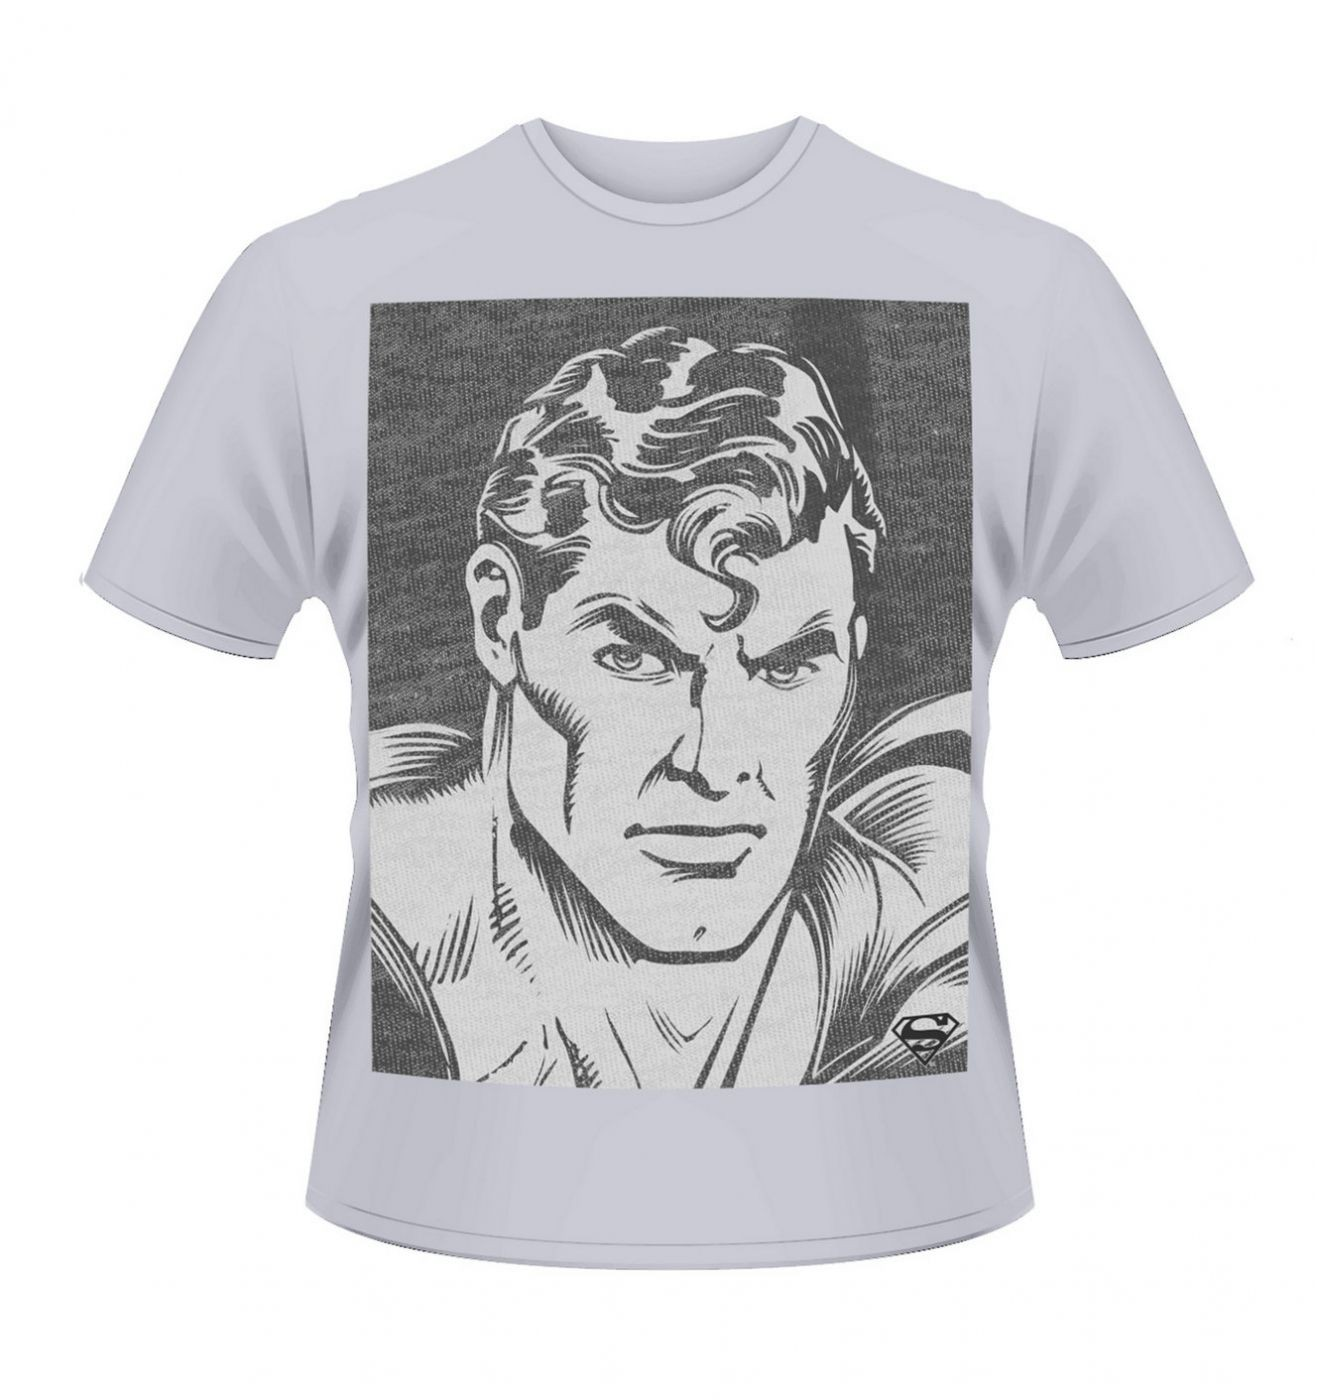 OFFICIAL Superman Portrait men's t-shirt